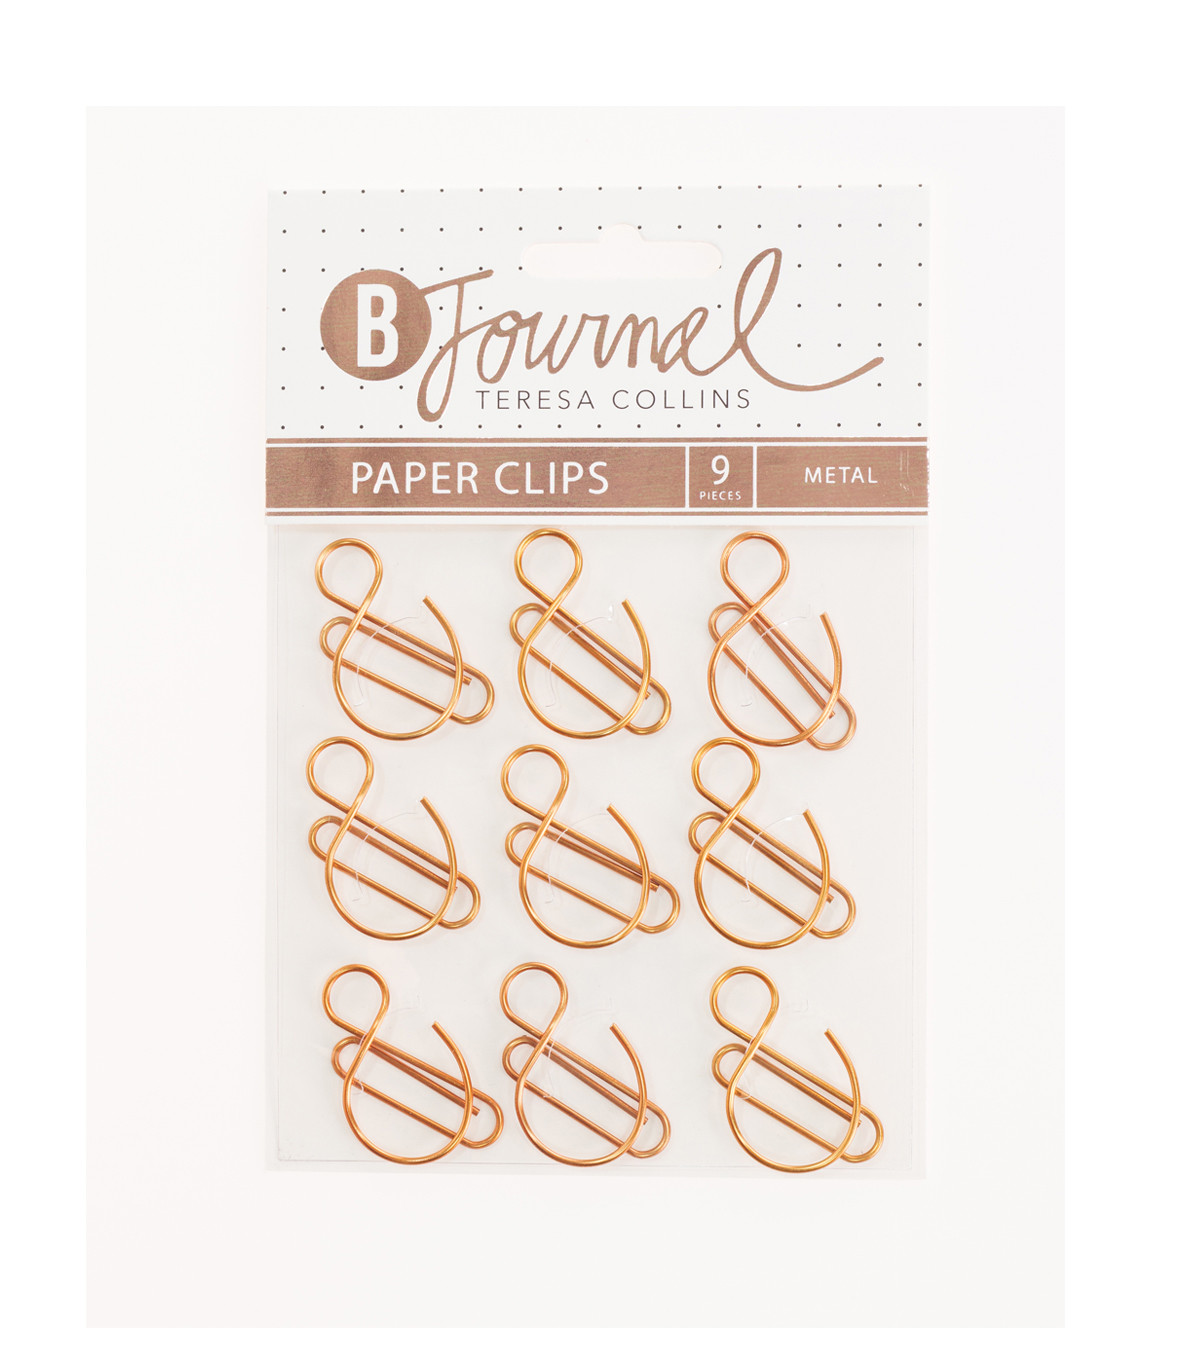 Teresa Collins™ B-Journal Pack of 9 Paper Clips-Ampersand